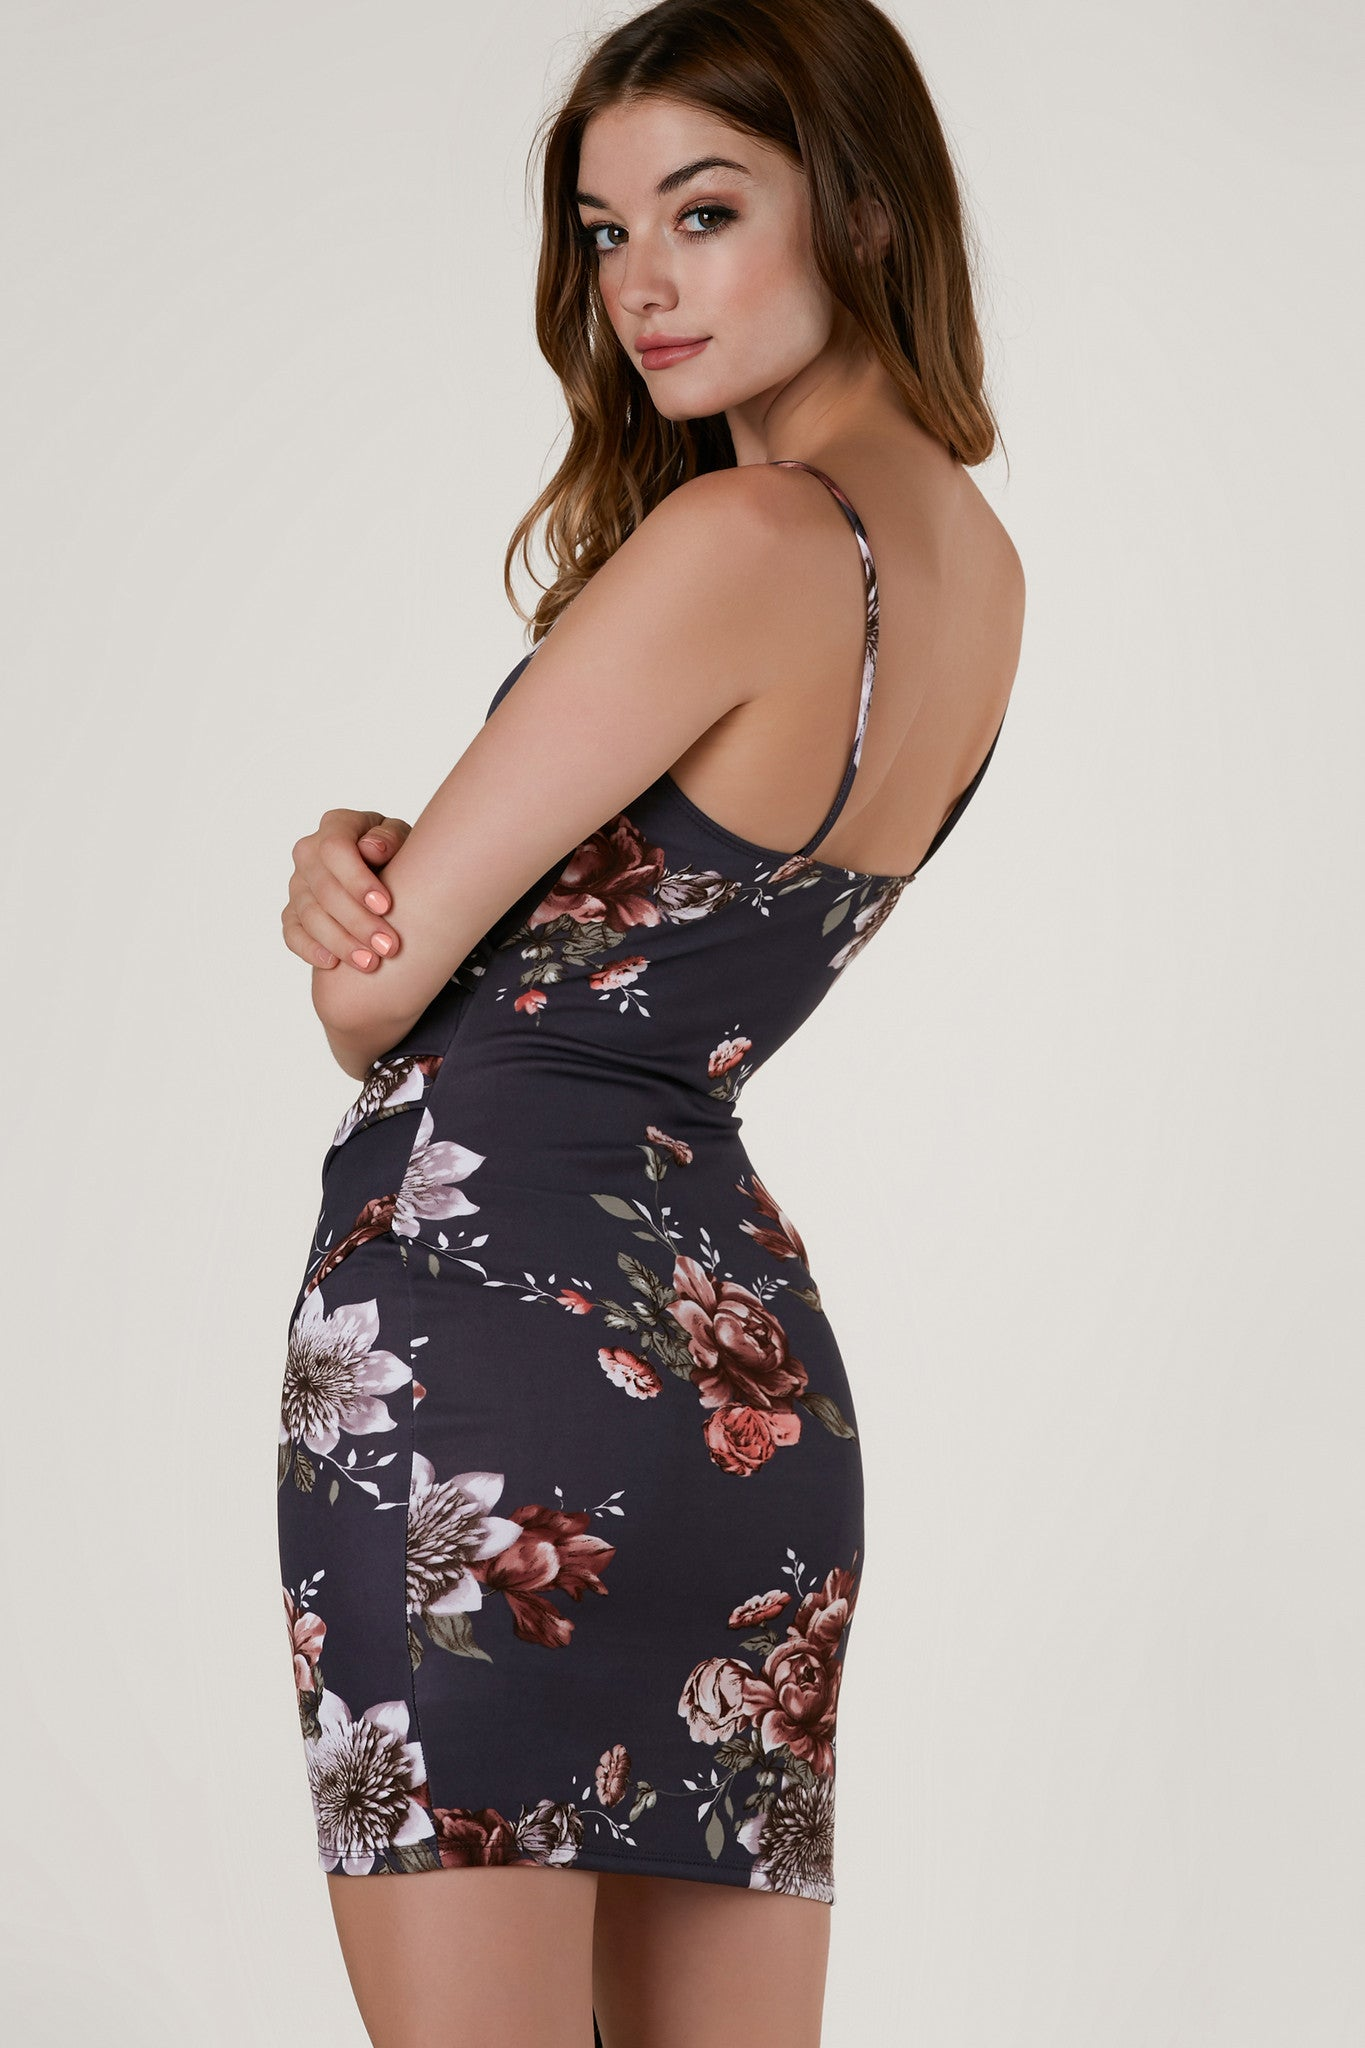 Sleeveless asymmetrical dress with overlap V-neckline and envelope style hem. Floral print throughout with ruching on one side for a flattering fit.